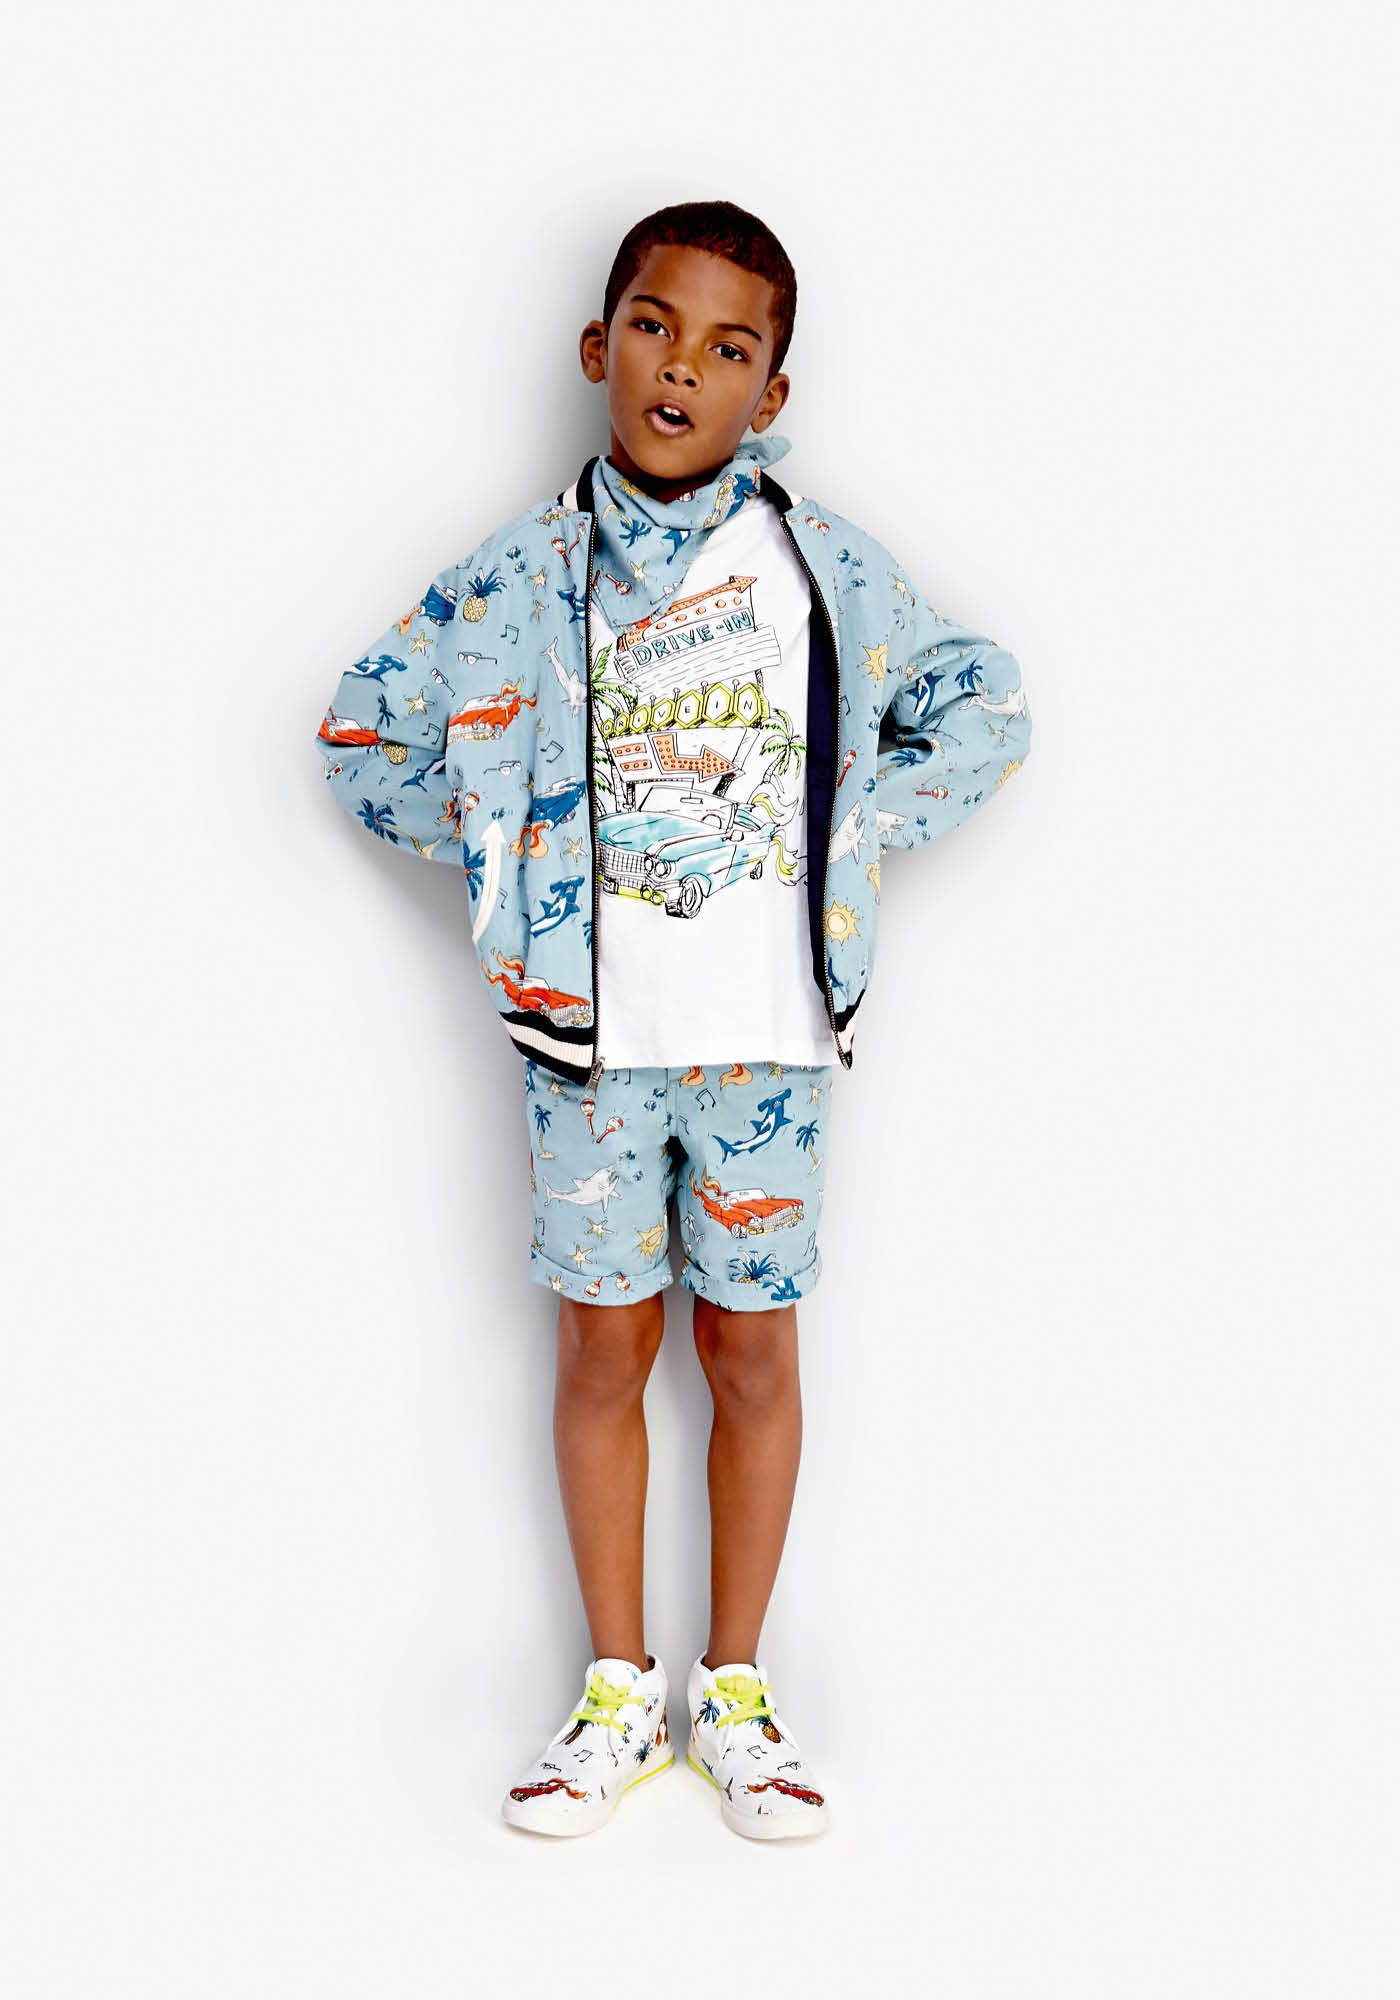 bd5d42f68 Discover the Stella McCartney Kids Spring Summer 18 collection, focused on  fun, modern and playful styles for babies, boys and girls from newborn to  14 ...